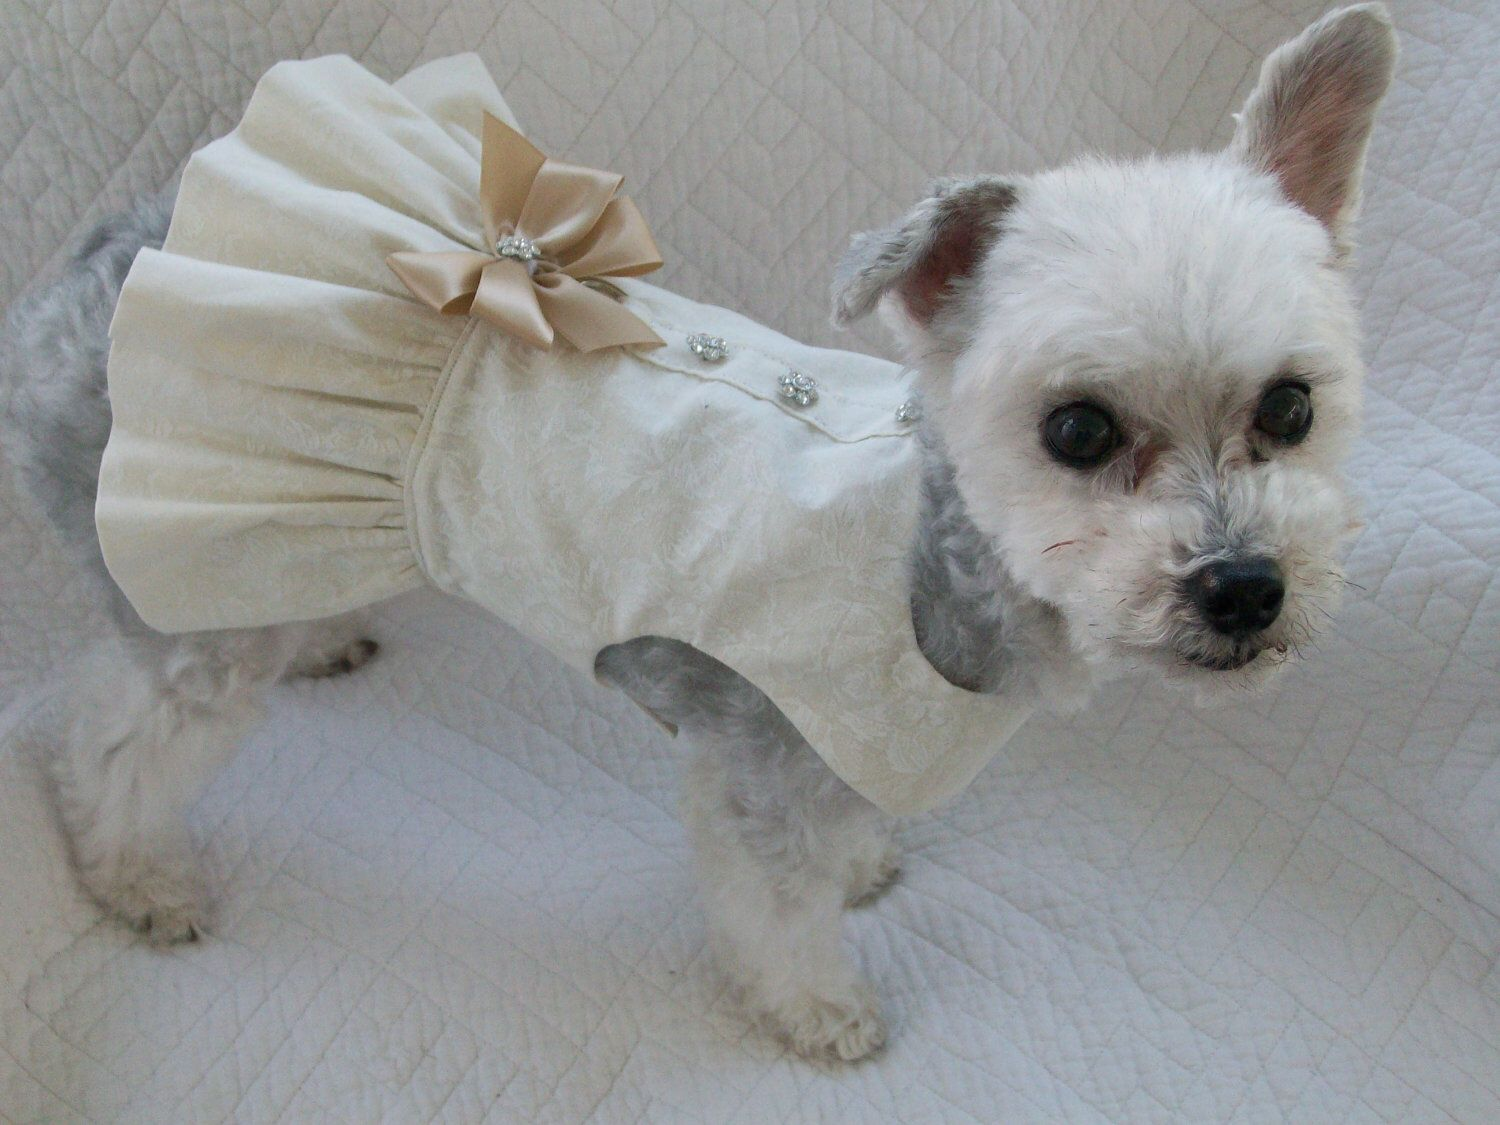 Cat in wedding dress  Wedding Dog Dress Harness for Dog or Cat Outfit by graciespawprints